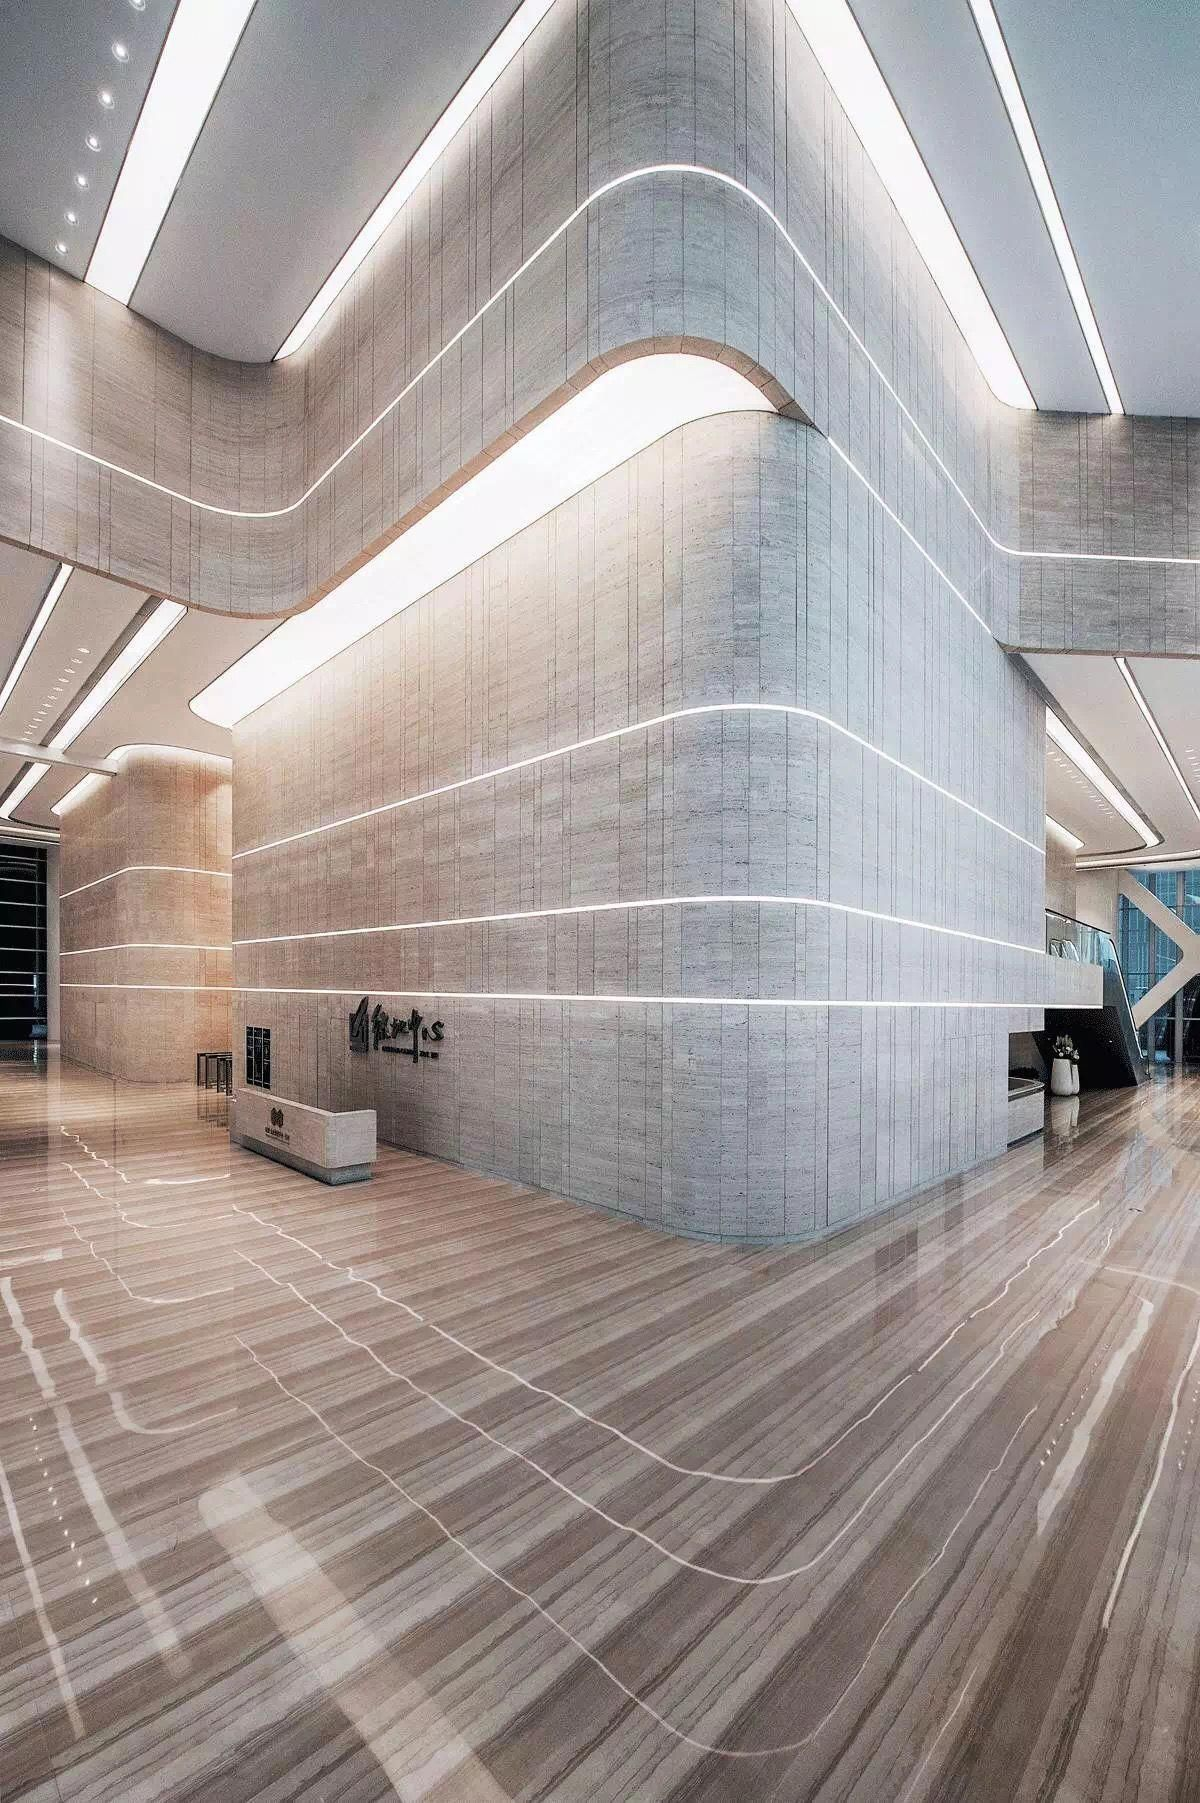 Best Free 3d Room Design Software: The Linear Light On The Wall Is Reflecting On The Floor